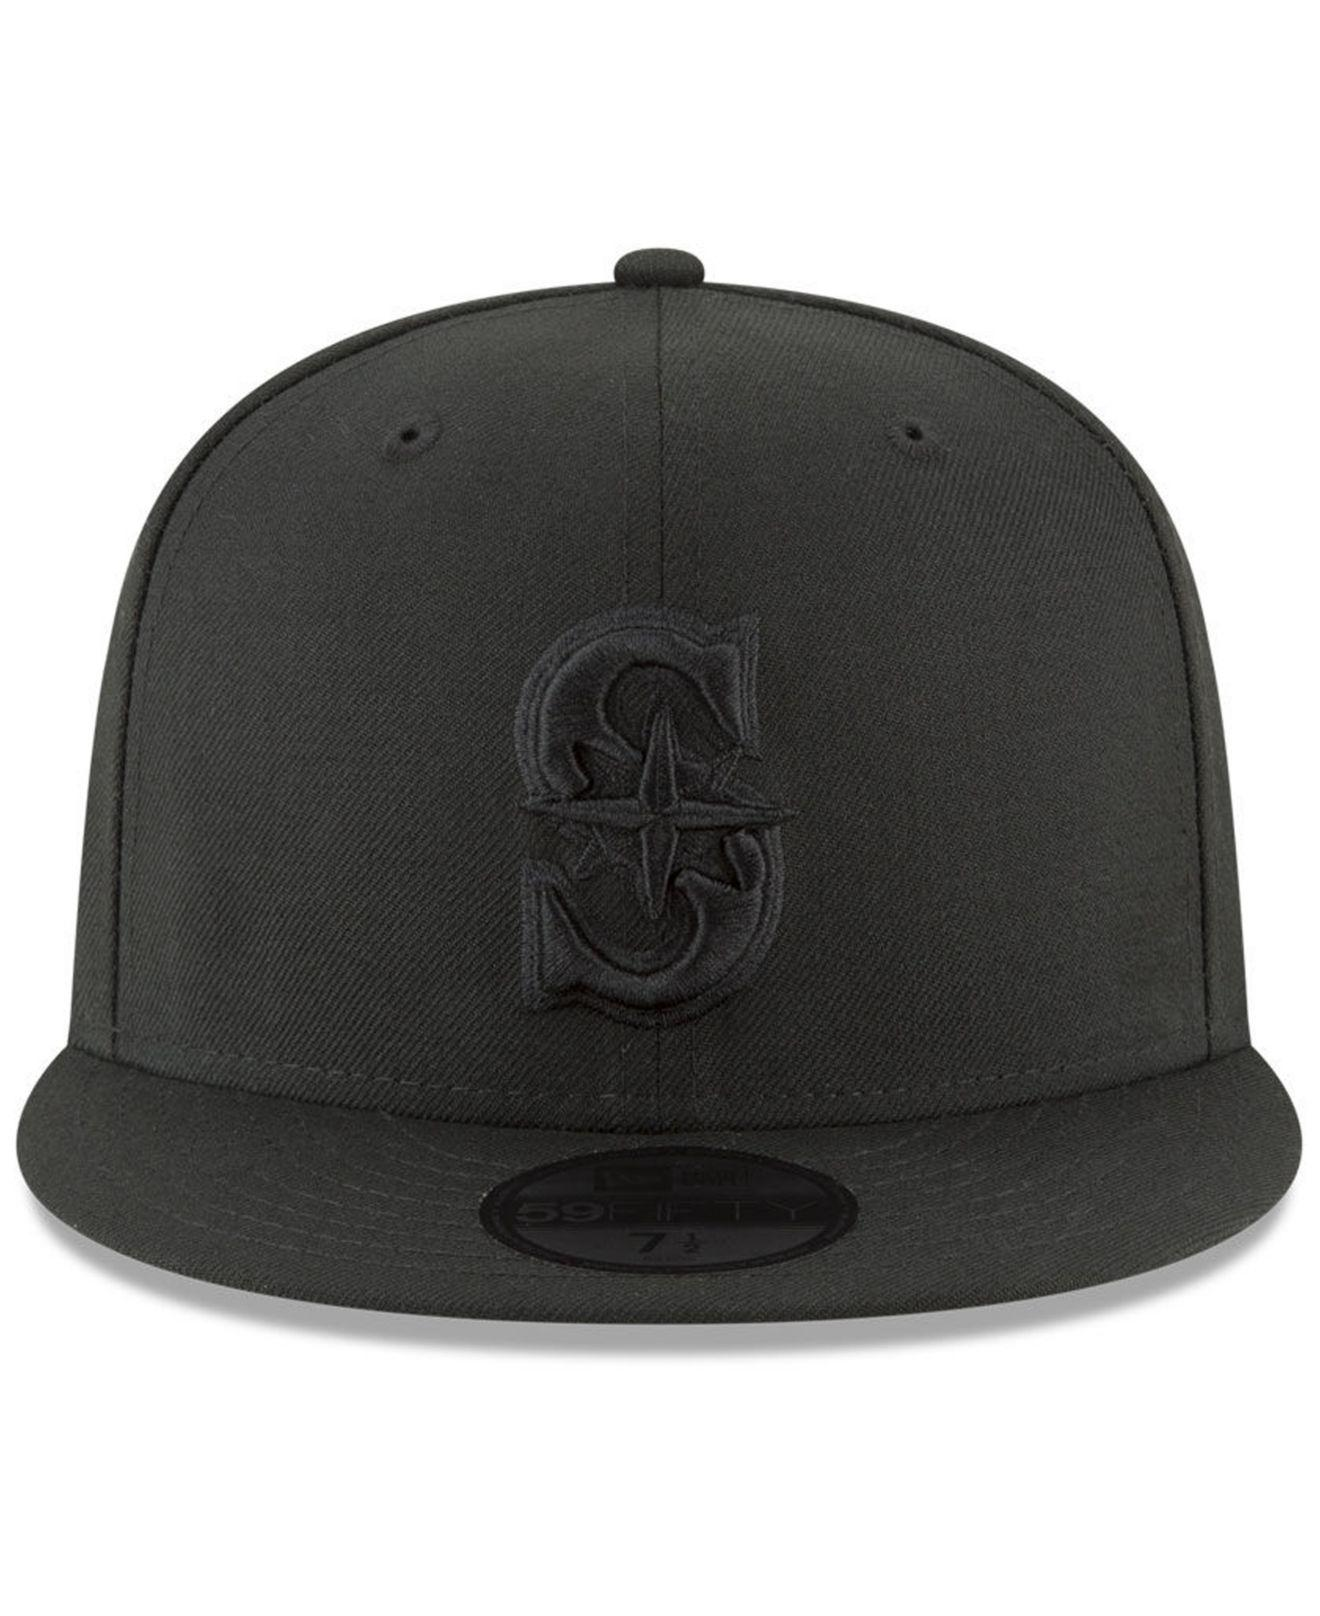 new products da5a7 da3af Lyst - KTZ Seattle Mariners Blackout 59fifty Fitted Cap in Black for Men